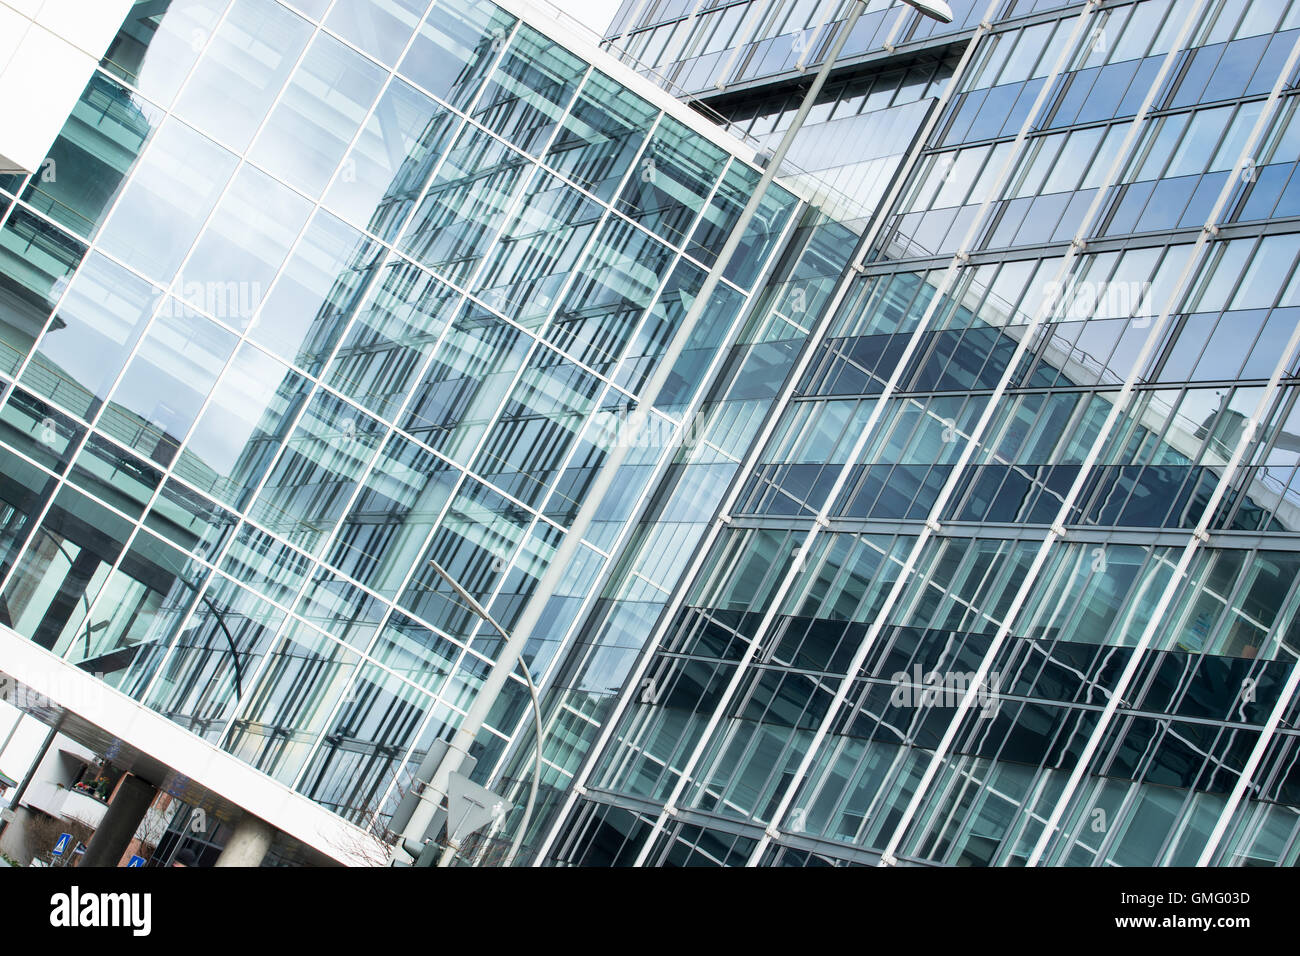 glass facade design office building. Diagonal Image Of A Glass Facade An Office Building In The City Design